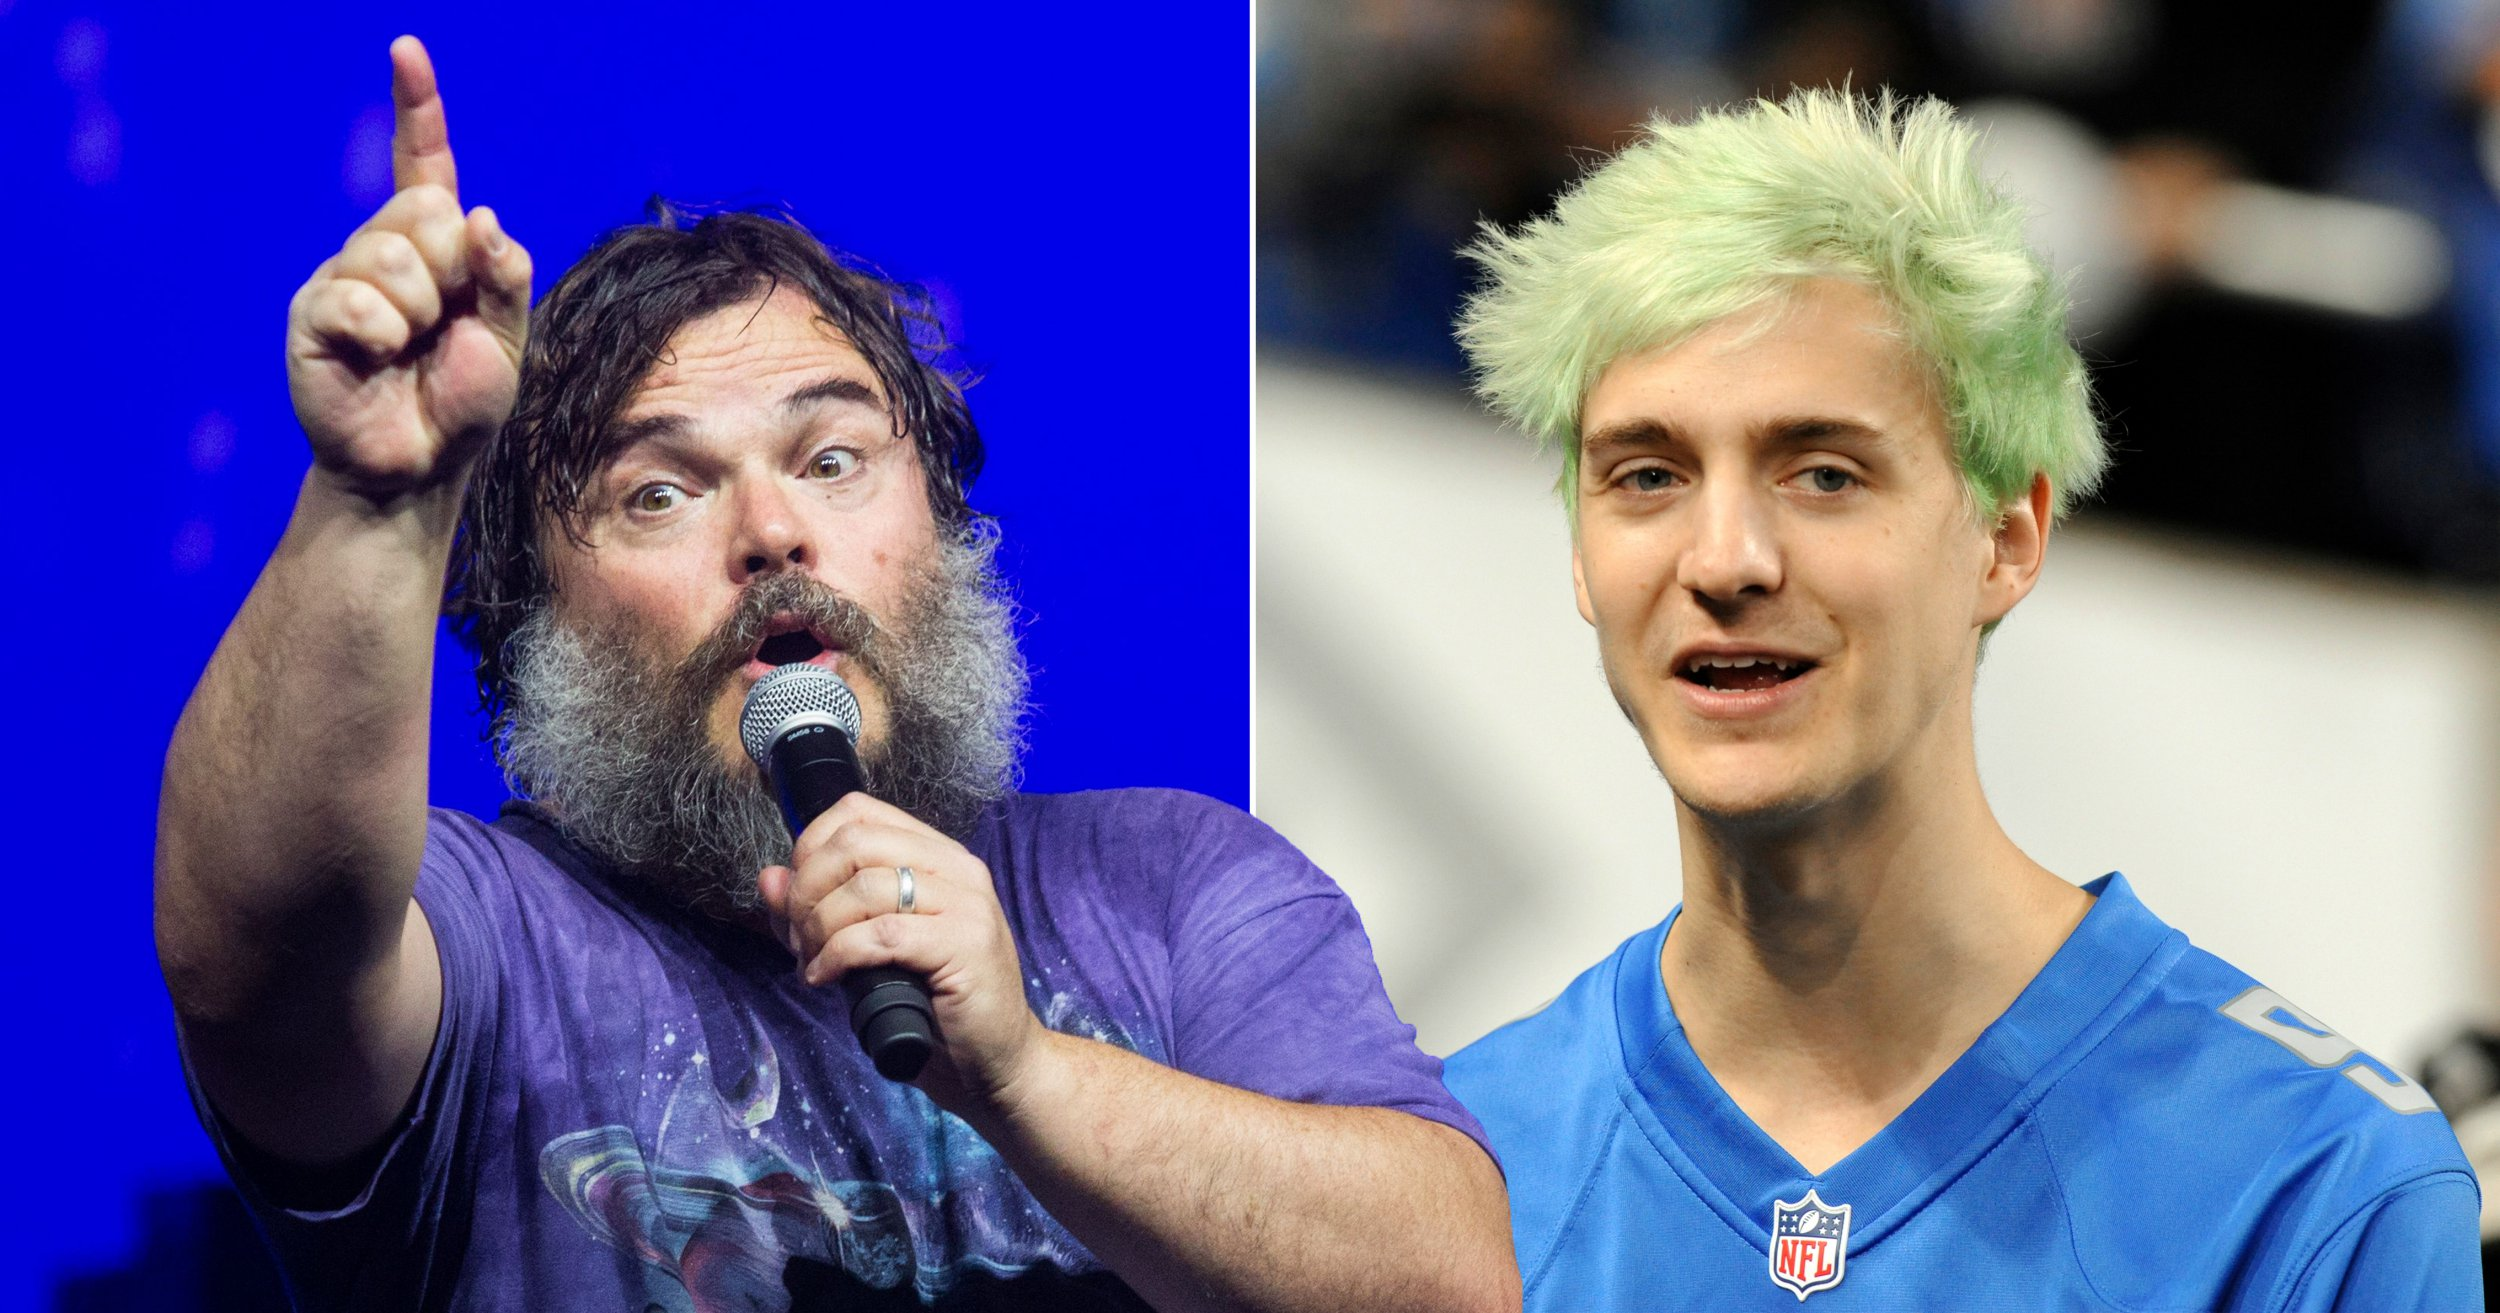 Jack Black challenges Ninja to a fight as he taunts: 'I'm ready for you…almost'